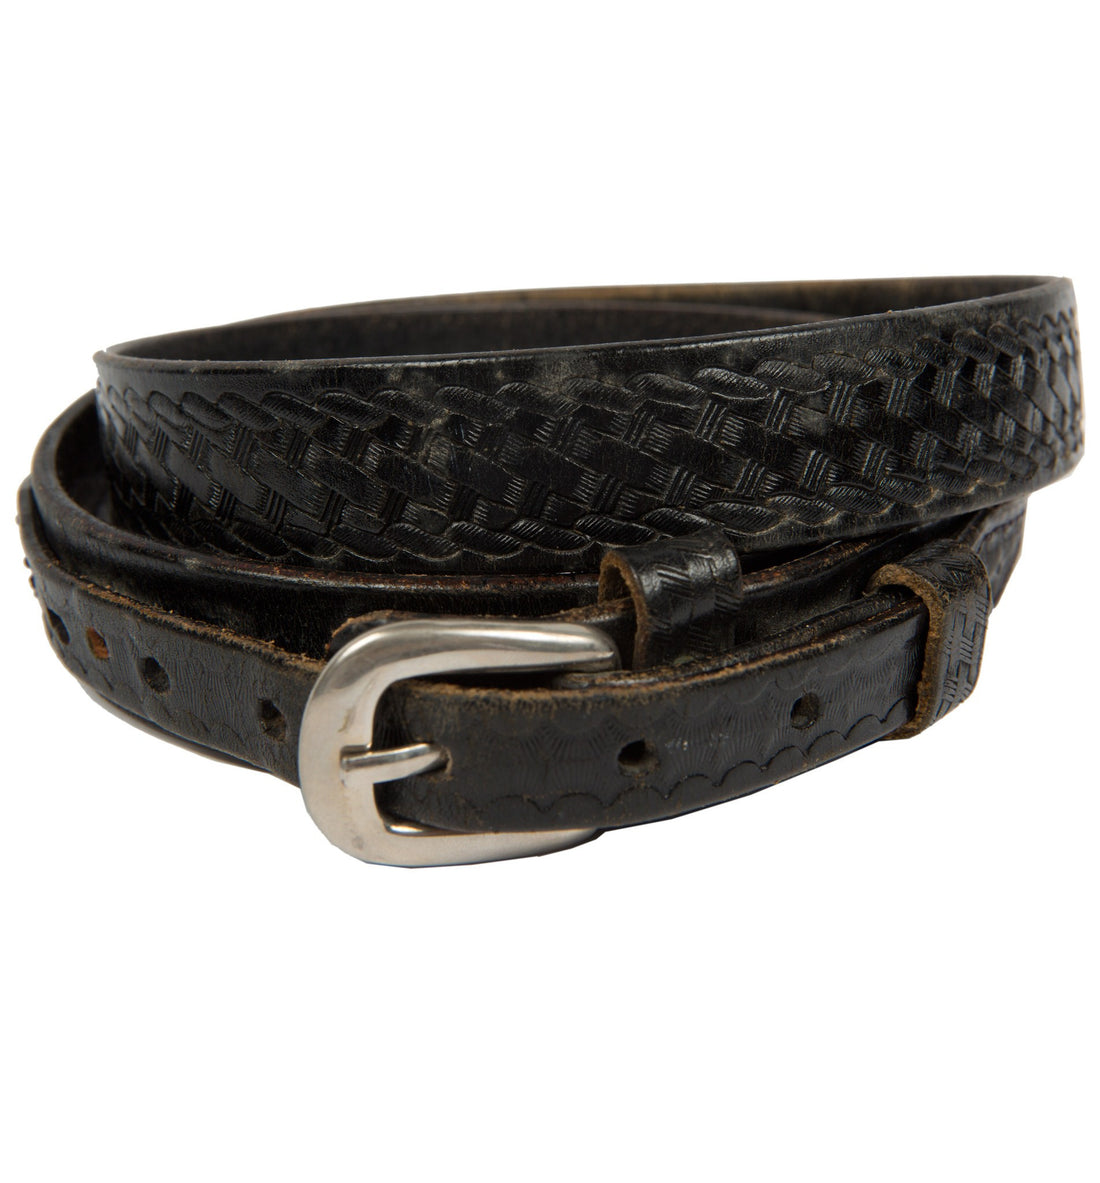 Vintage Black Leather Braided Belt, Size 40 - Vintage - Iron and Resin